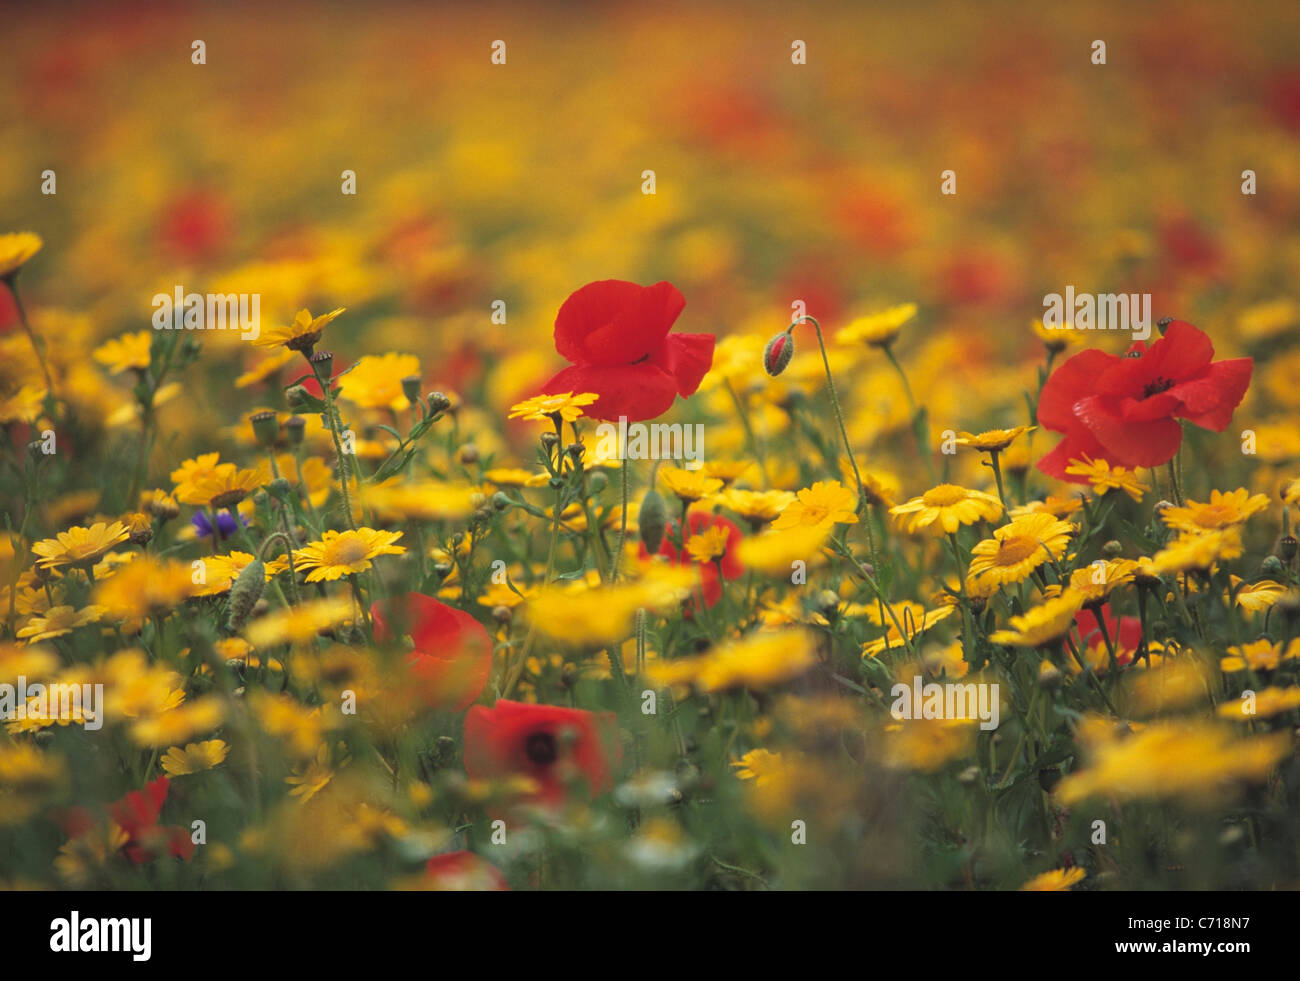 Wild flowers in Meadow, Mixed colours - Stock Image